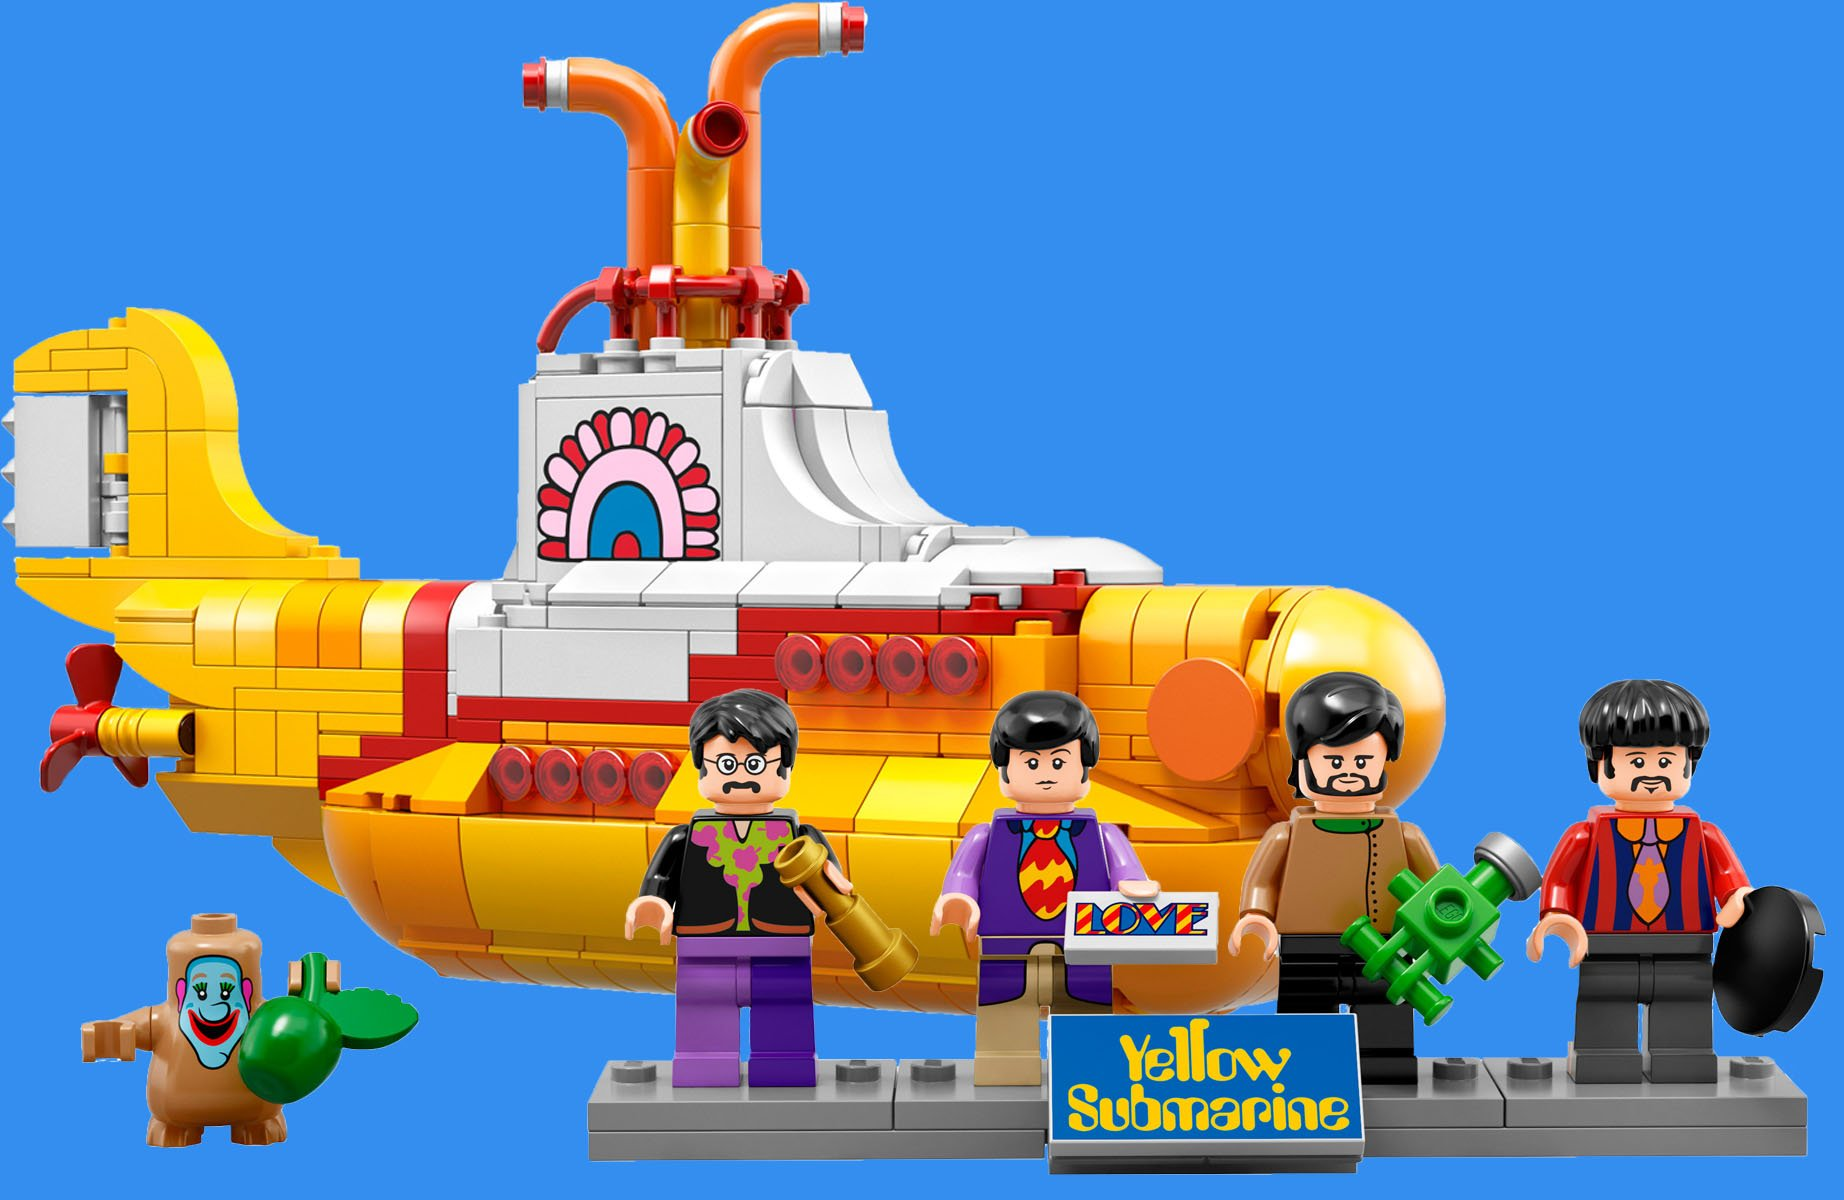 A fan asked LEGO to make a set of The Beatles' Yellow Submarine, so they did